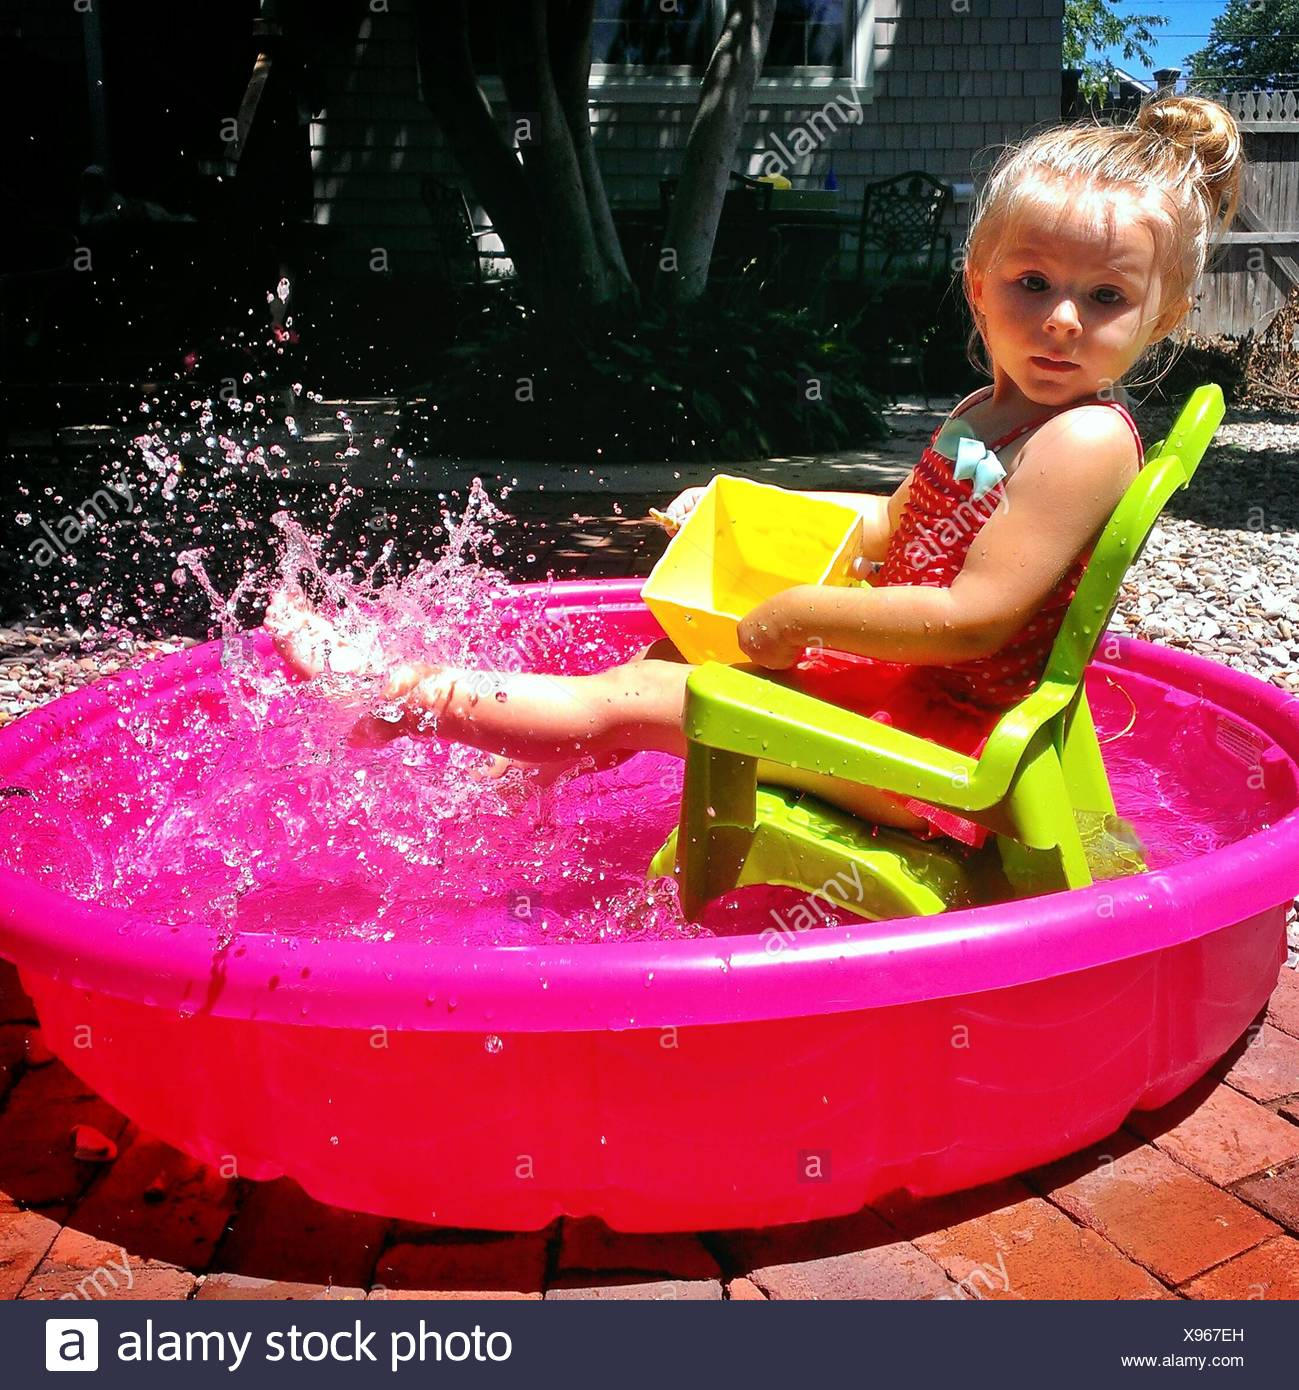 Side View Portrait Of A Cute Girl Splashing Water In Tub Outdoors - Stock Image